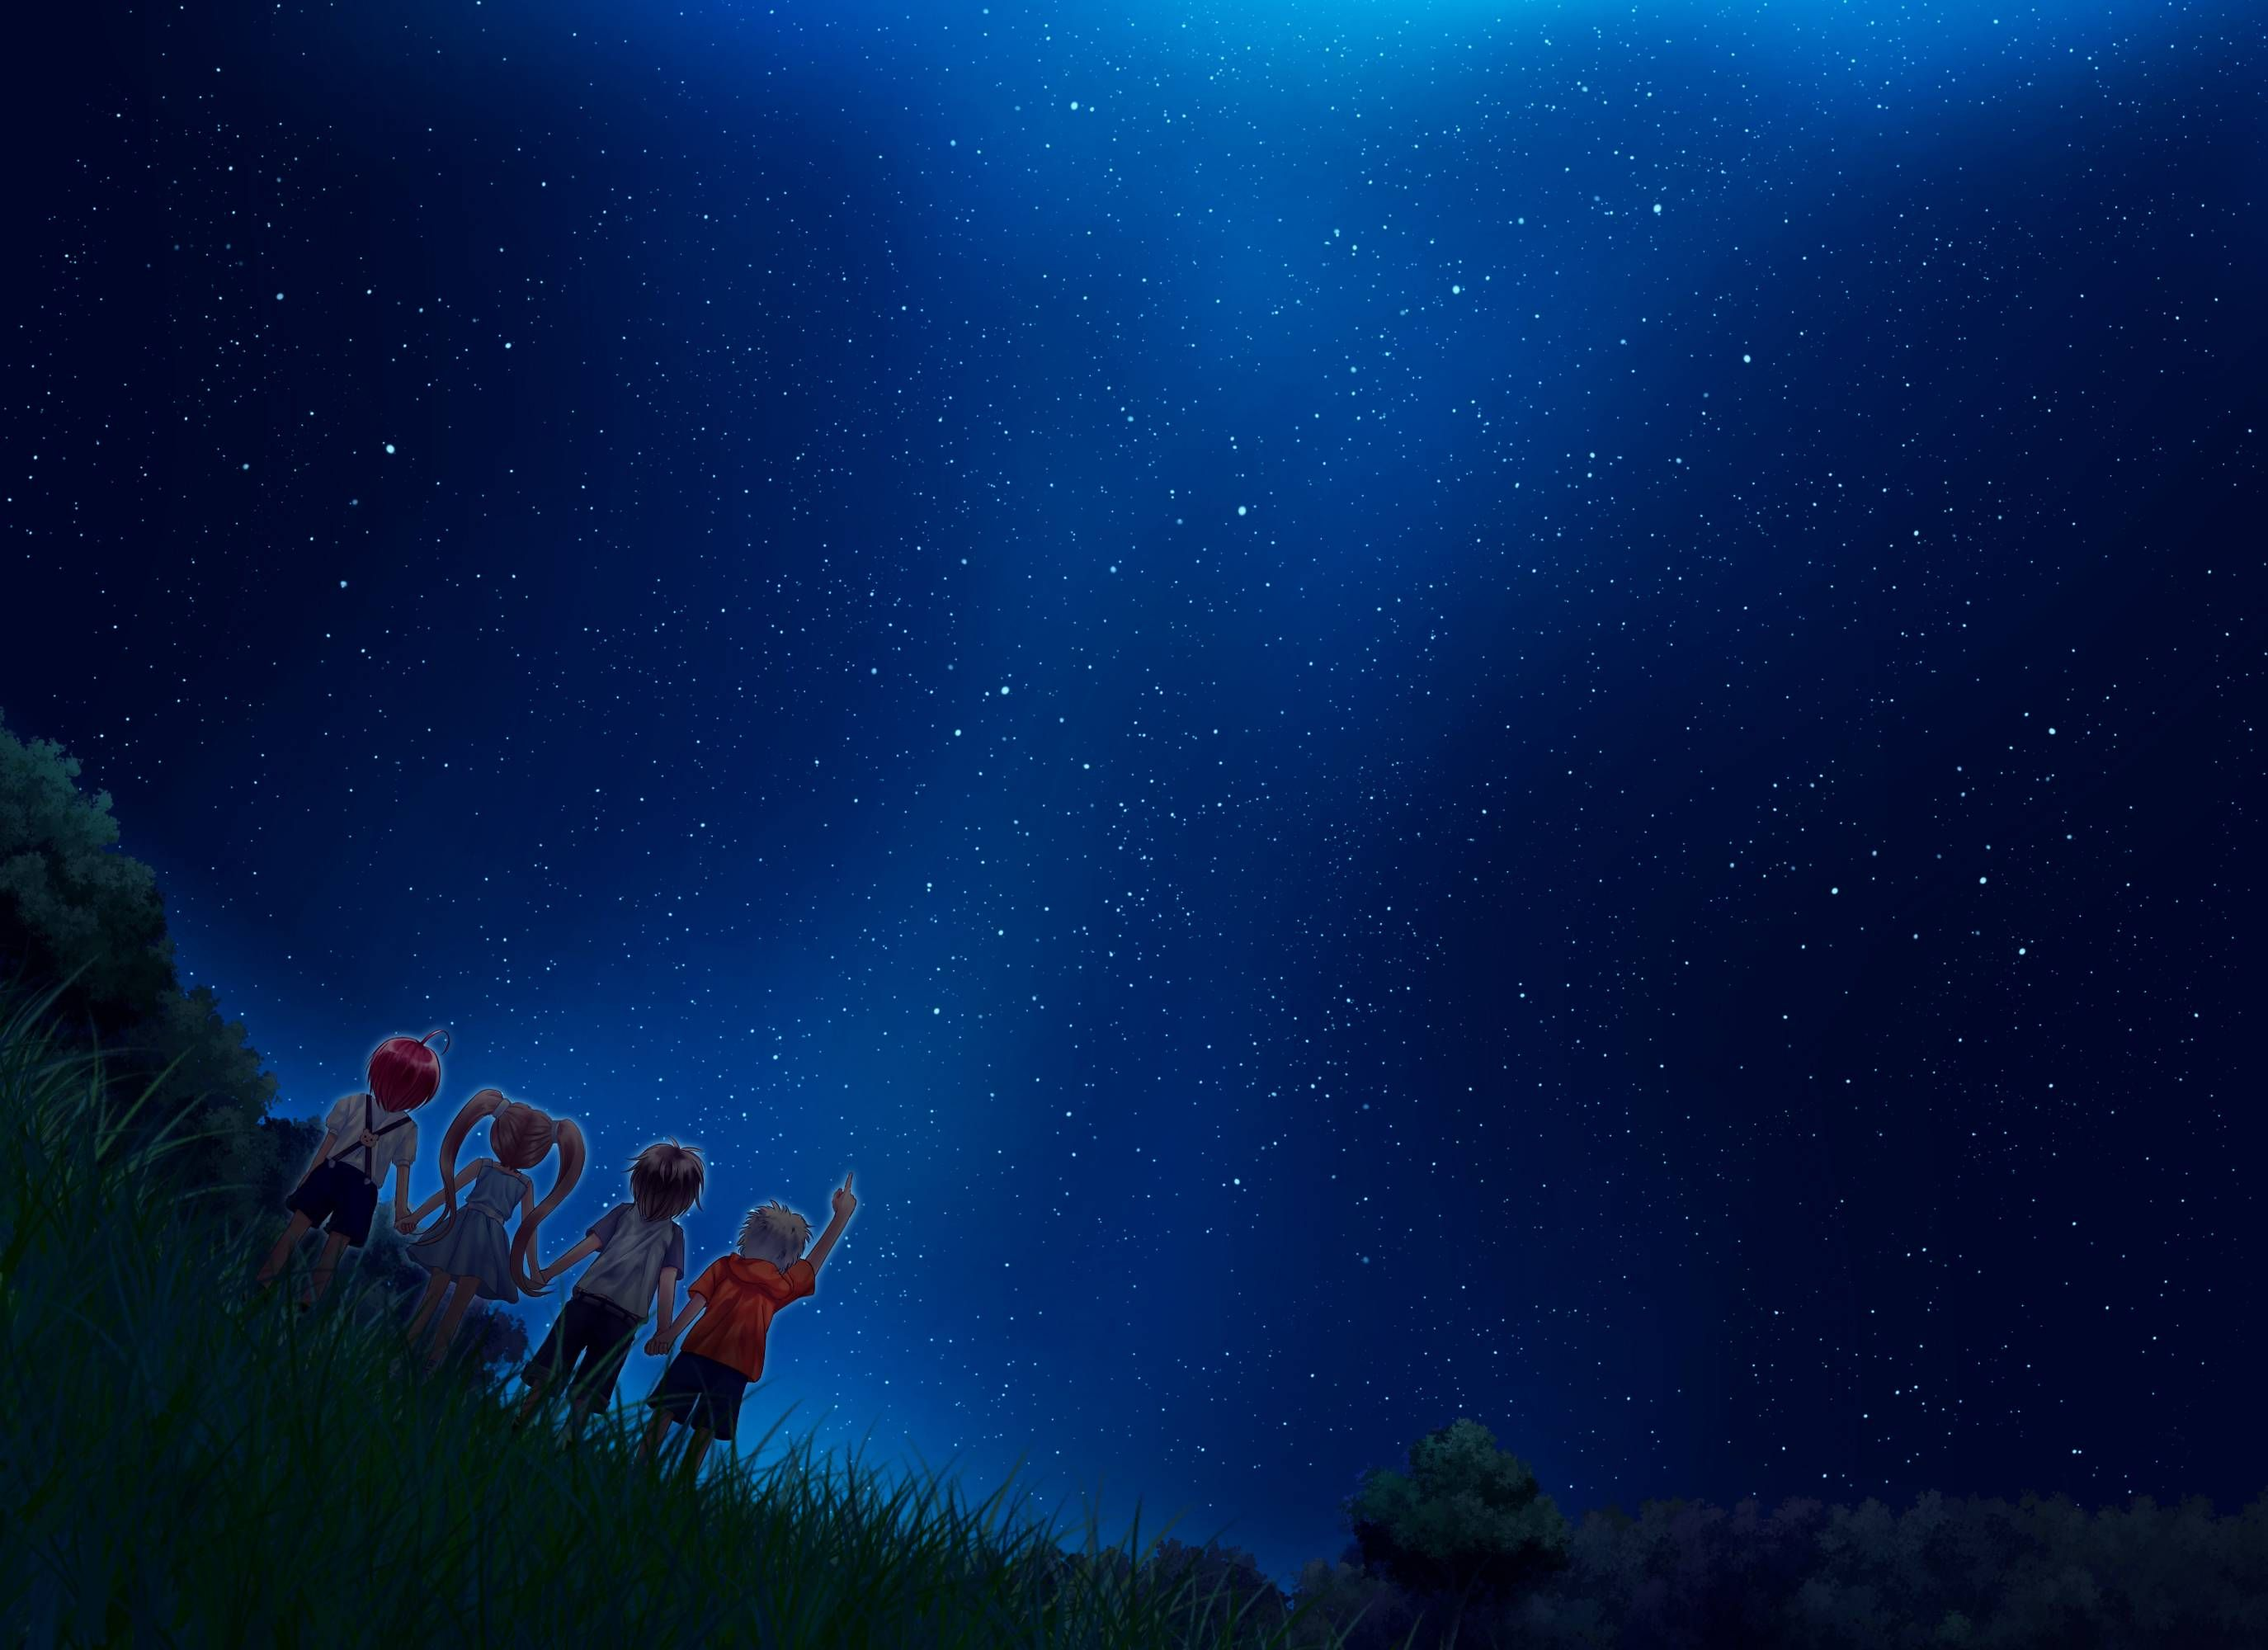 Anime Starry Night Sky Wallpaper For Android Monodomo